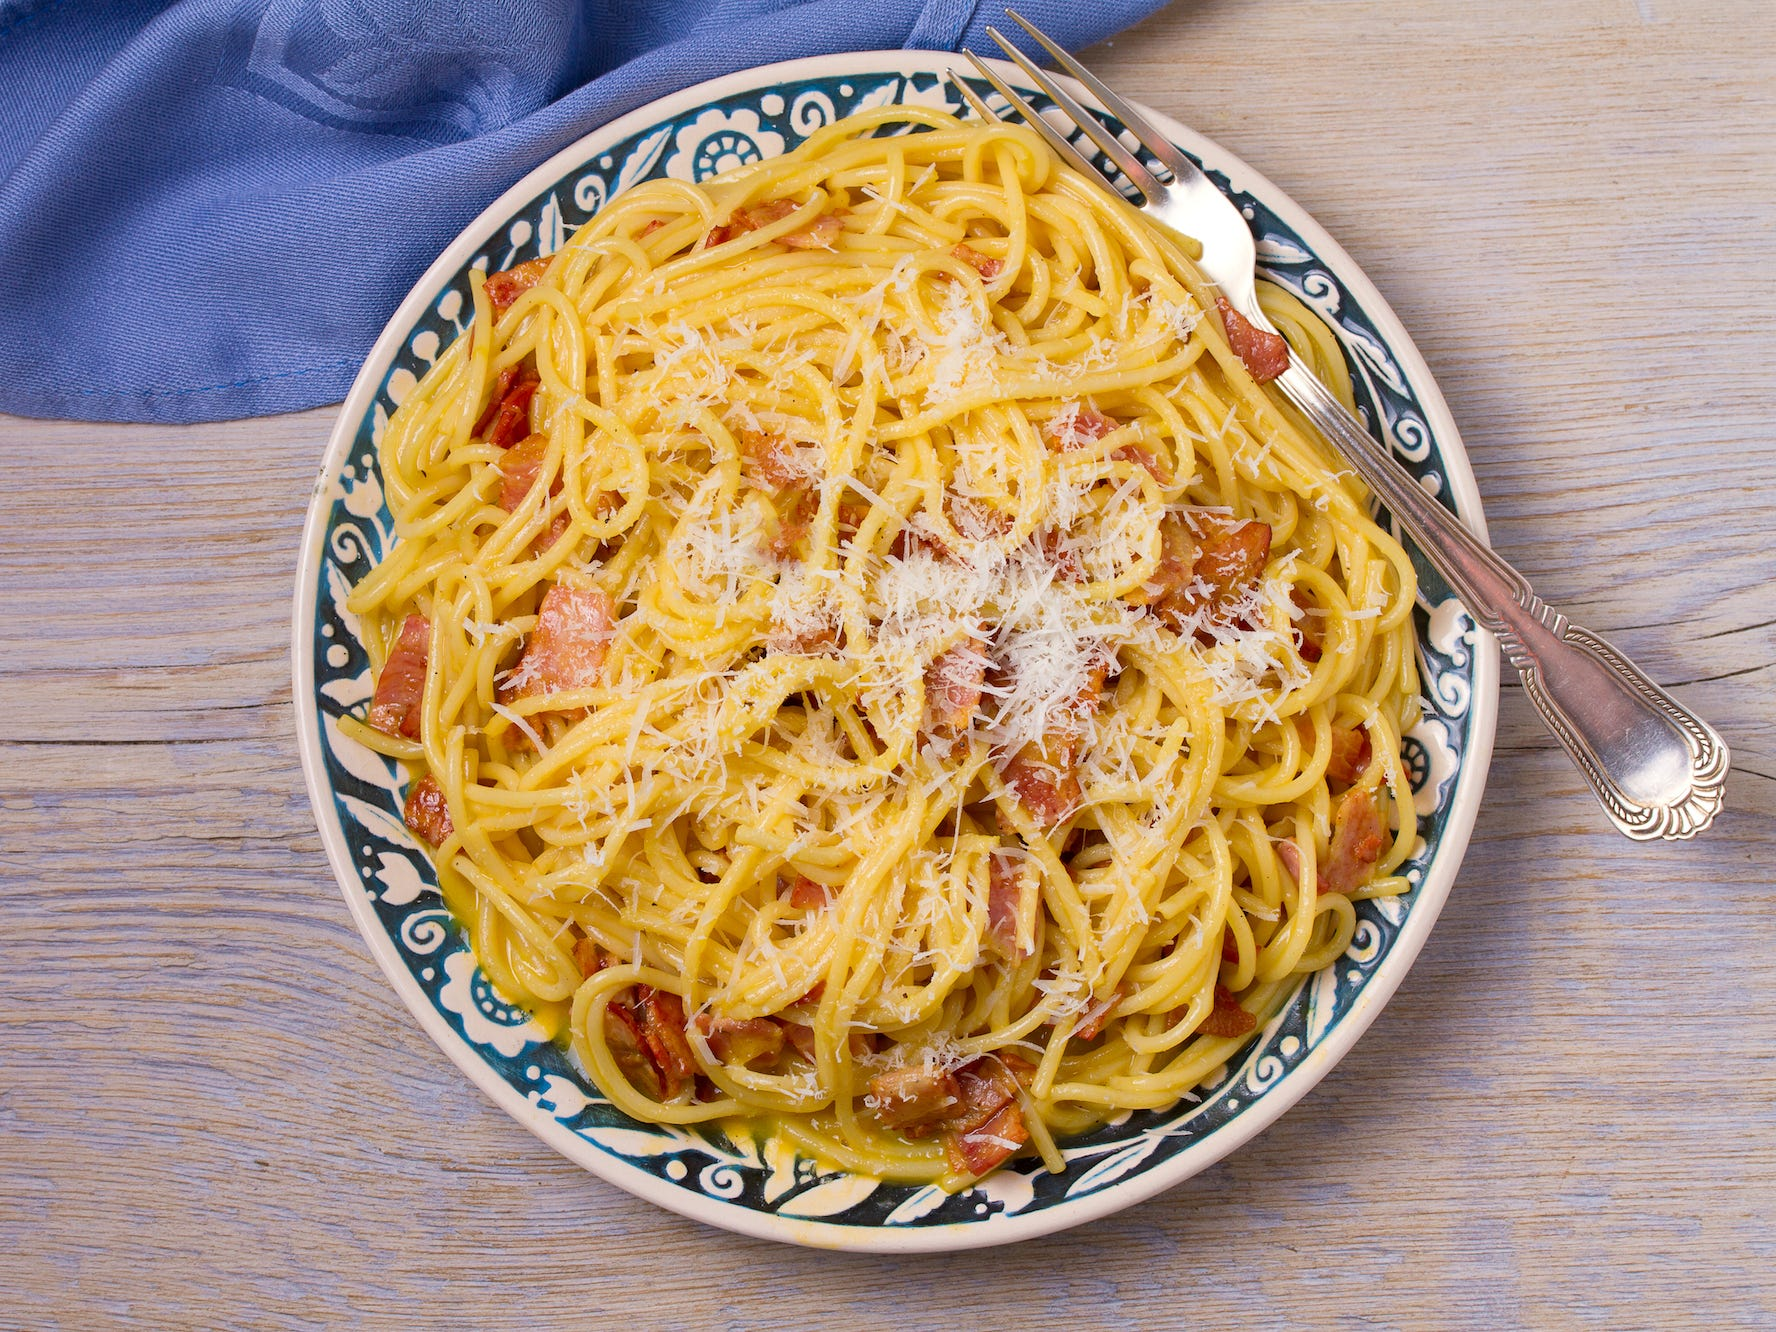 Pasta won't make you gain weight, according to a new study